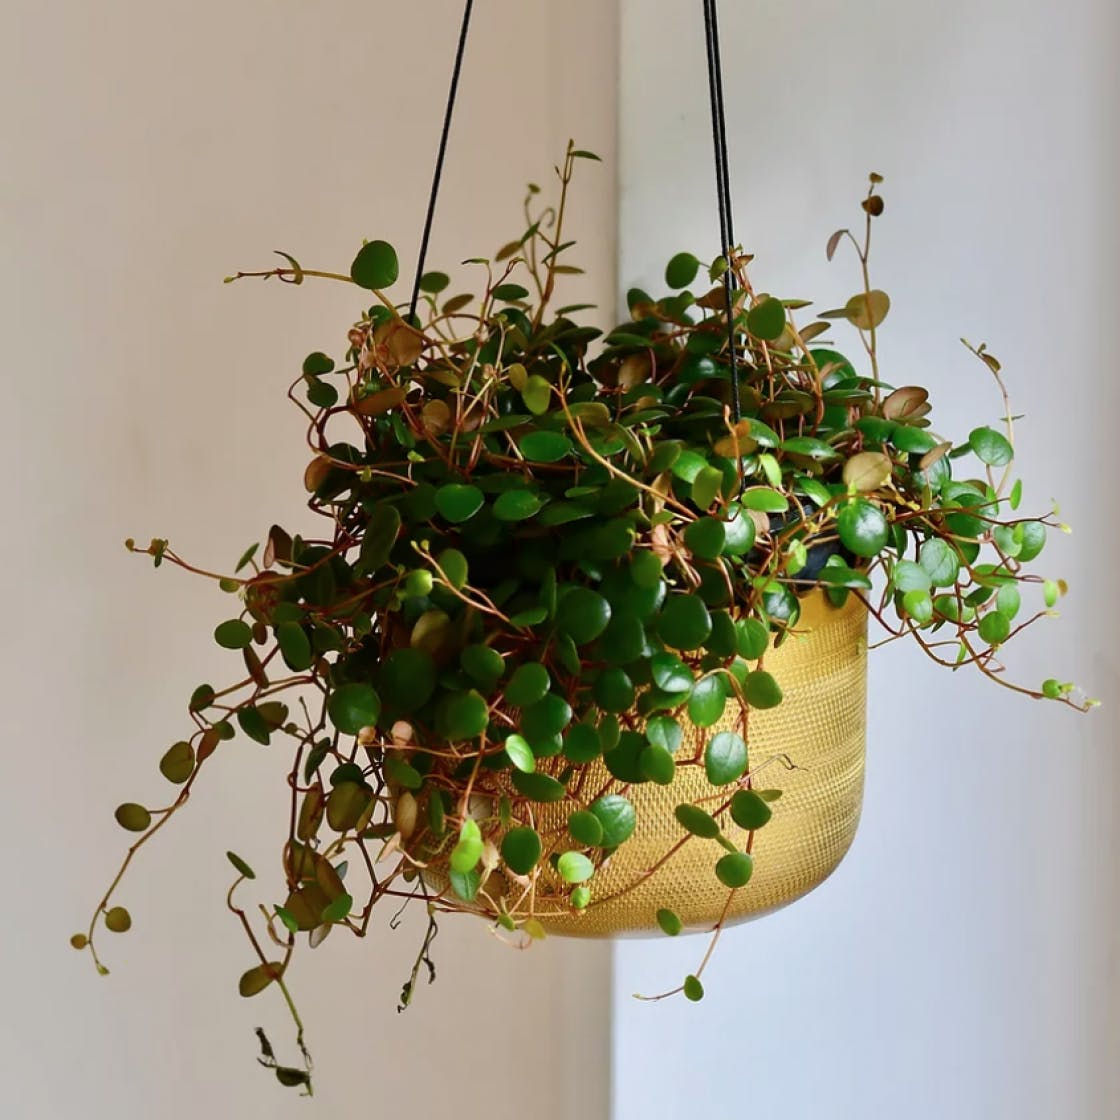 7 Unusual Houseplants To Add A Splash Of Excitement To Your Home